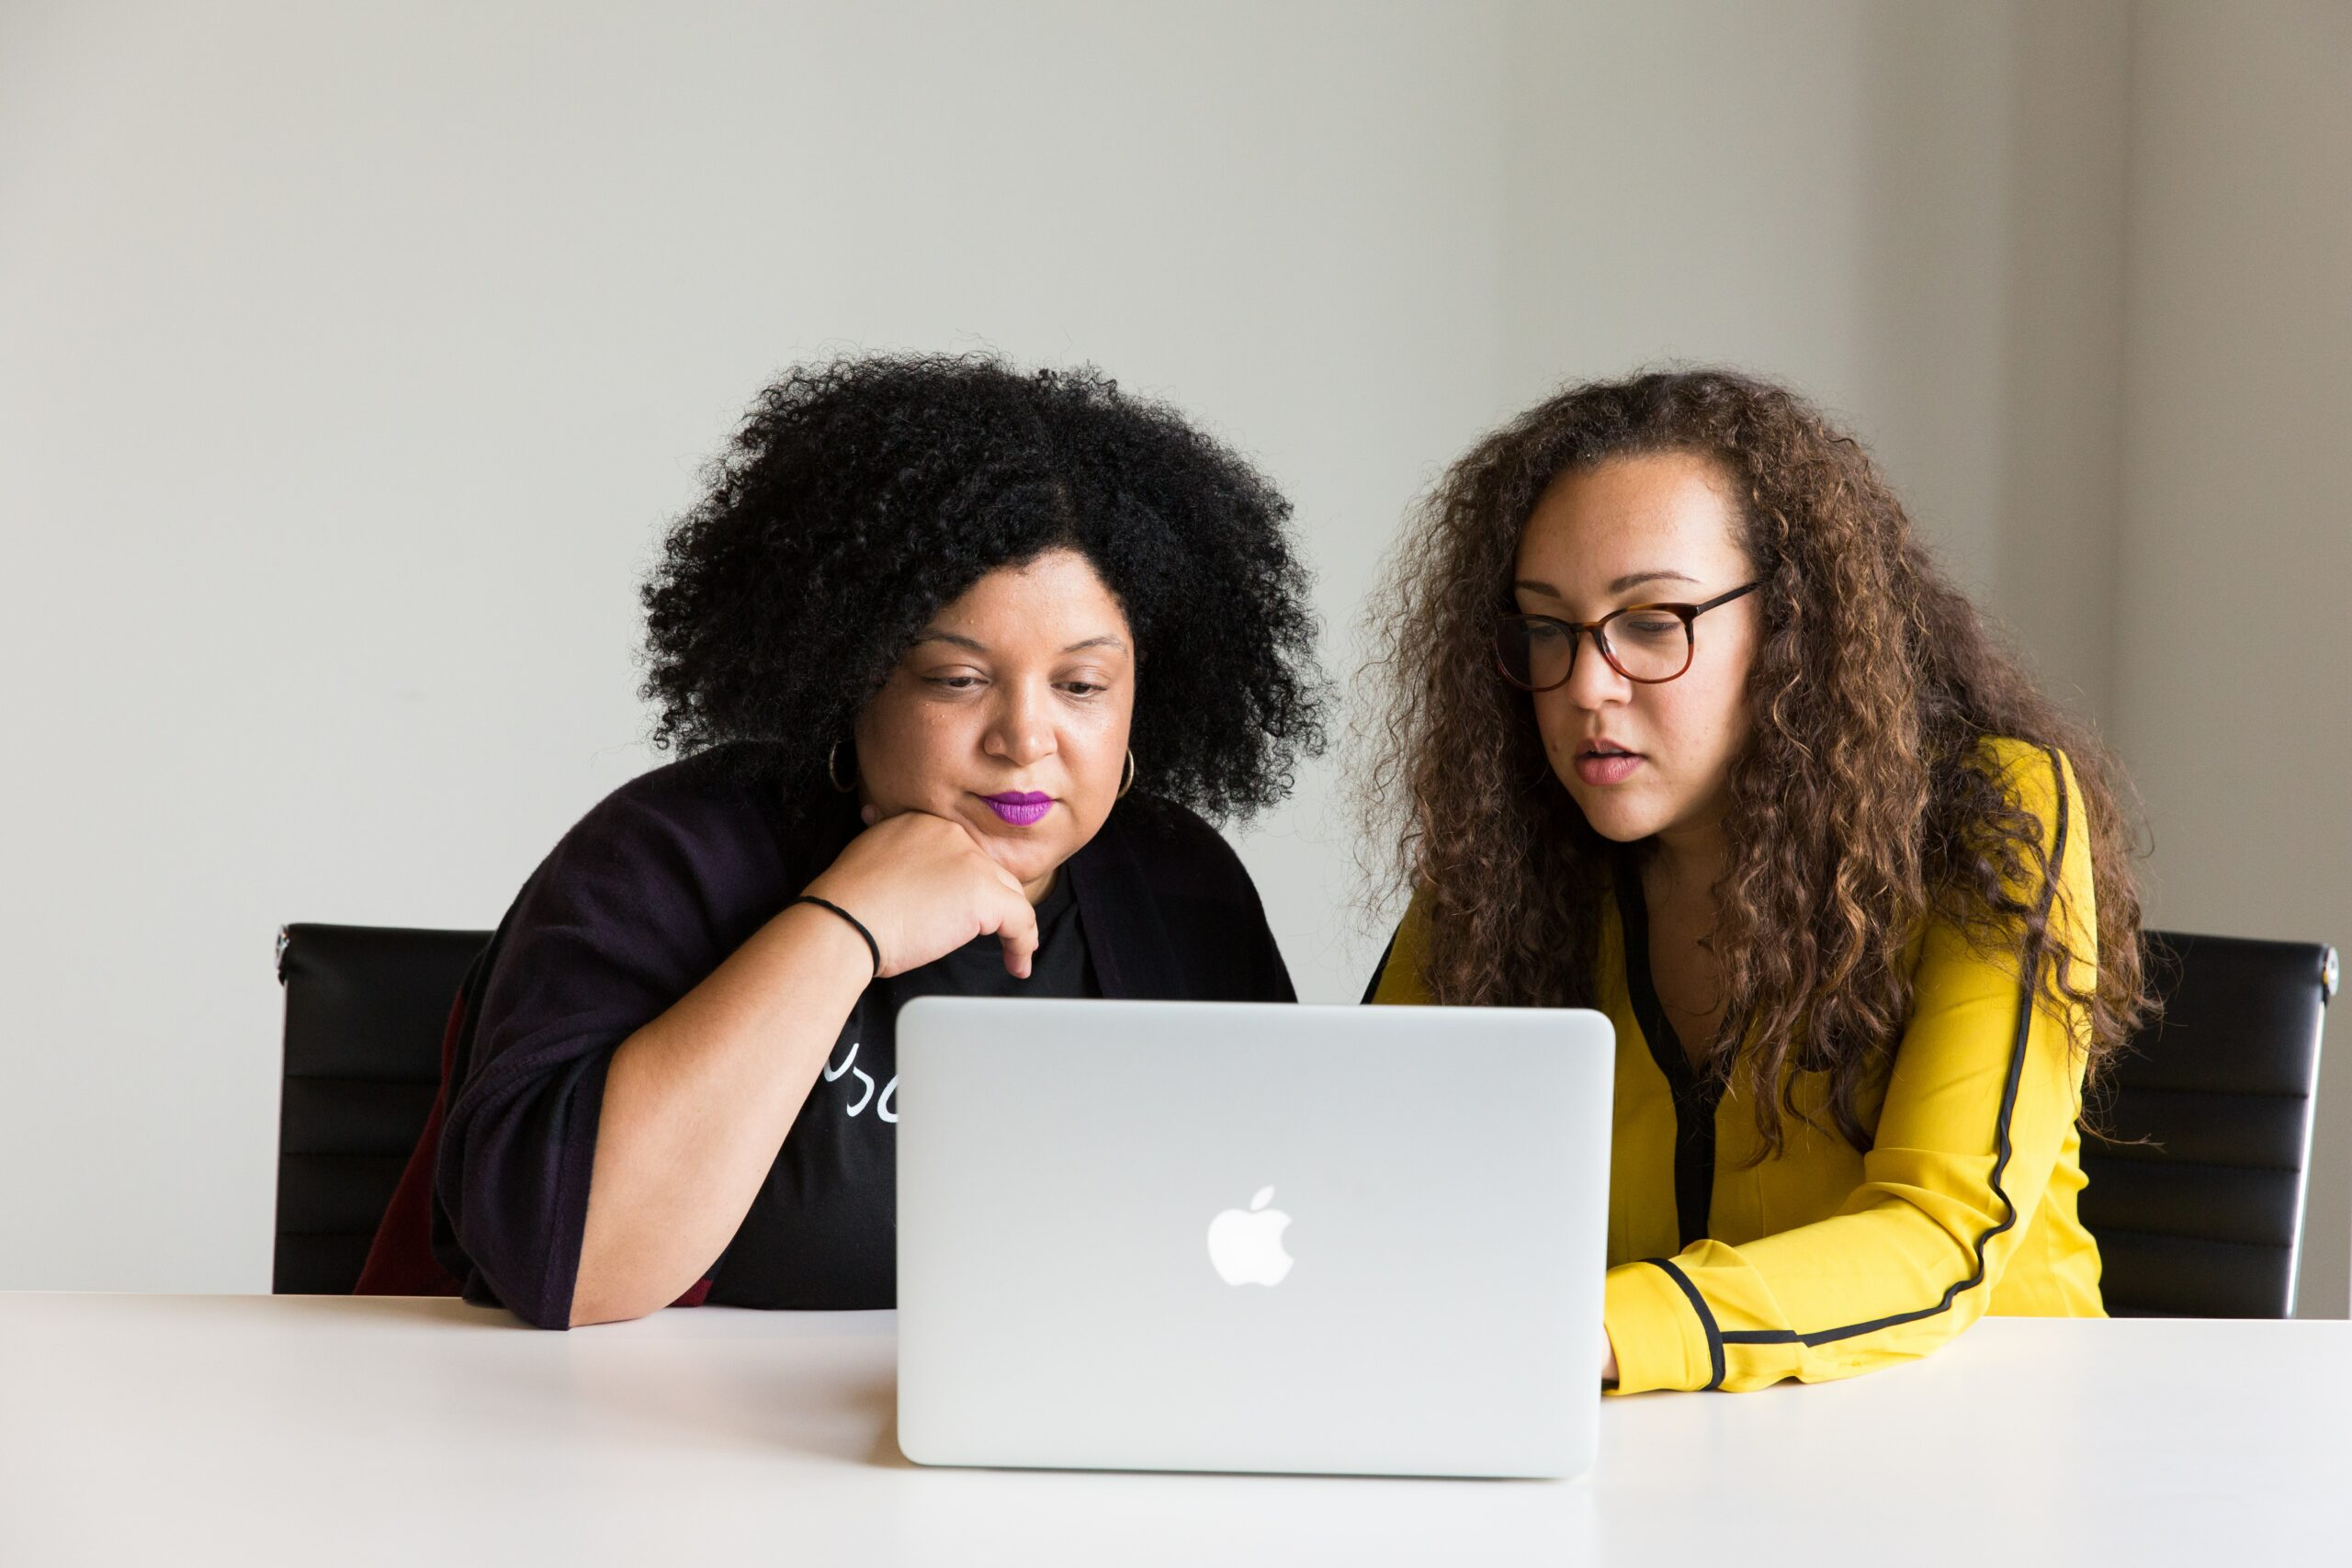 Two women talking about something on a computer screen